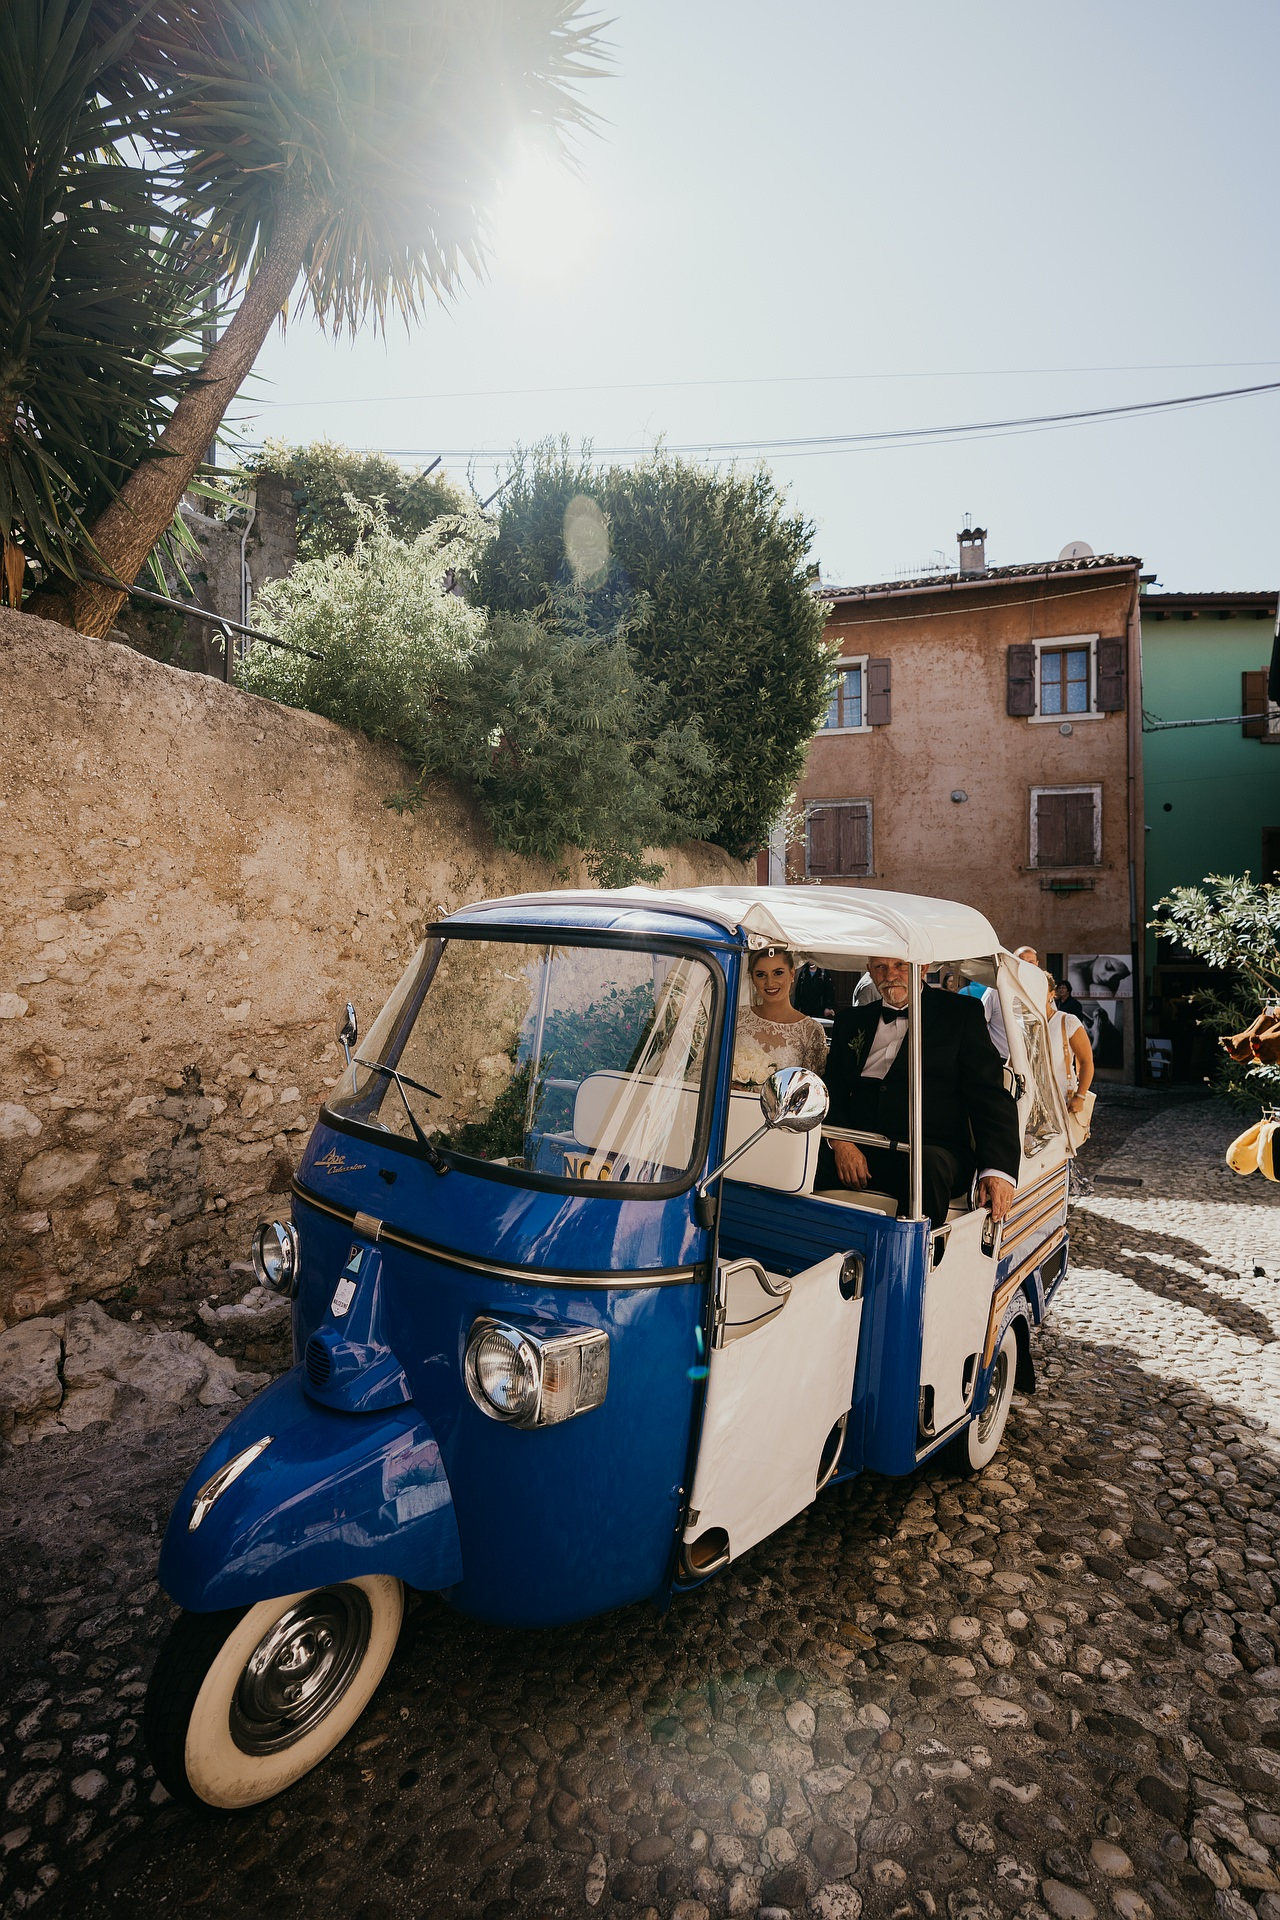 Malcesine VR Italy Elopement Photos | The bride reaches Malcesine Castle with an italian Ape Calessino